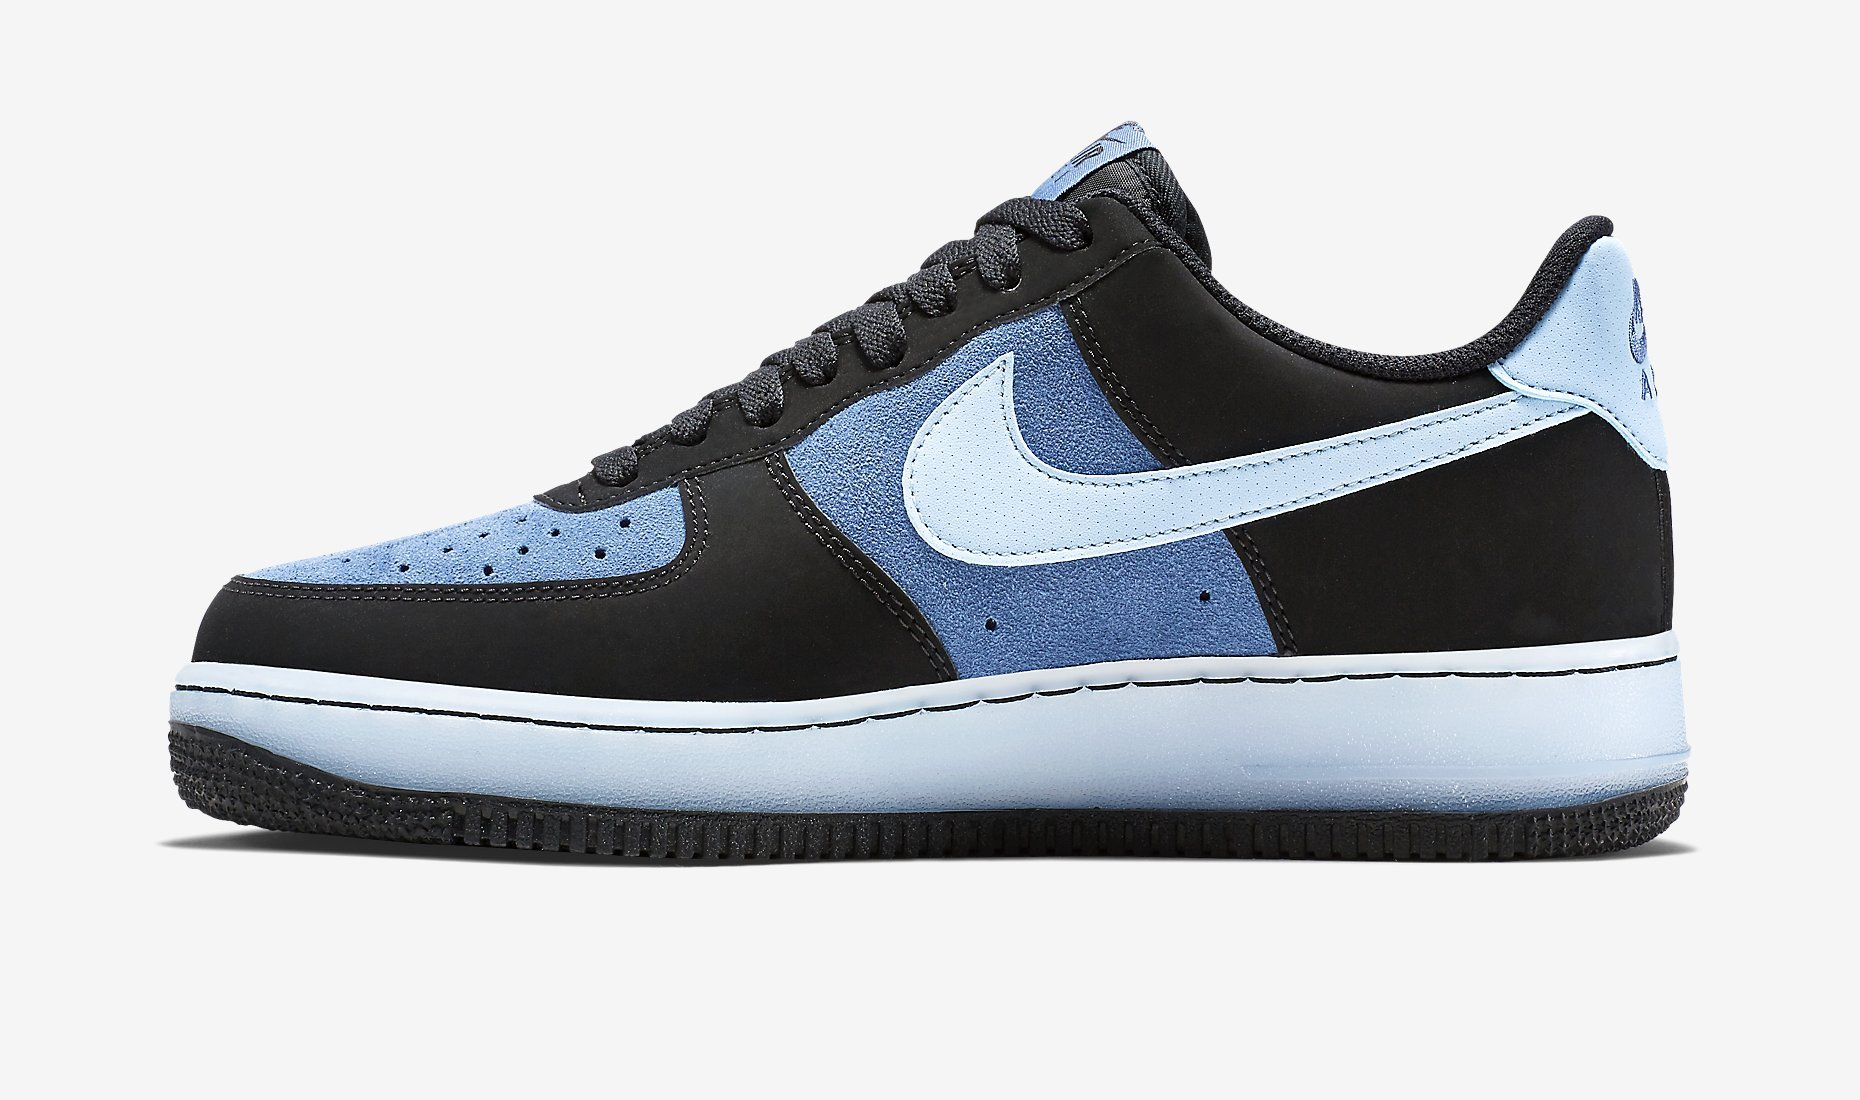 nike air force 1 low blue legend air 23 air jordan release dates foamposite air max and. Black Bedroom Furniture Sets. Home Design Ideas